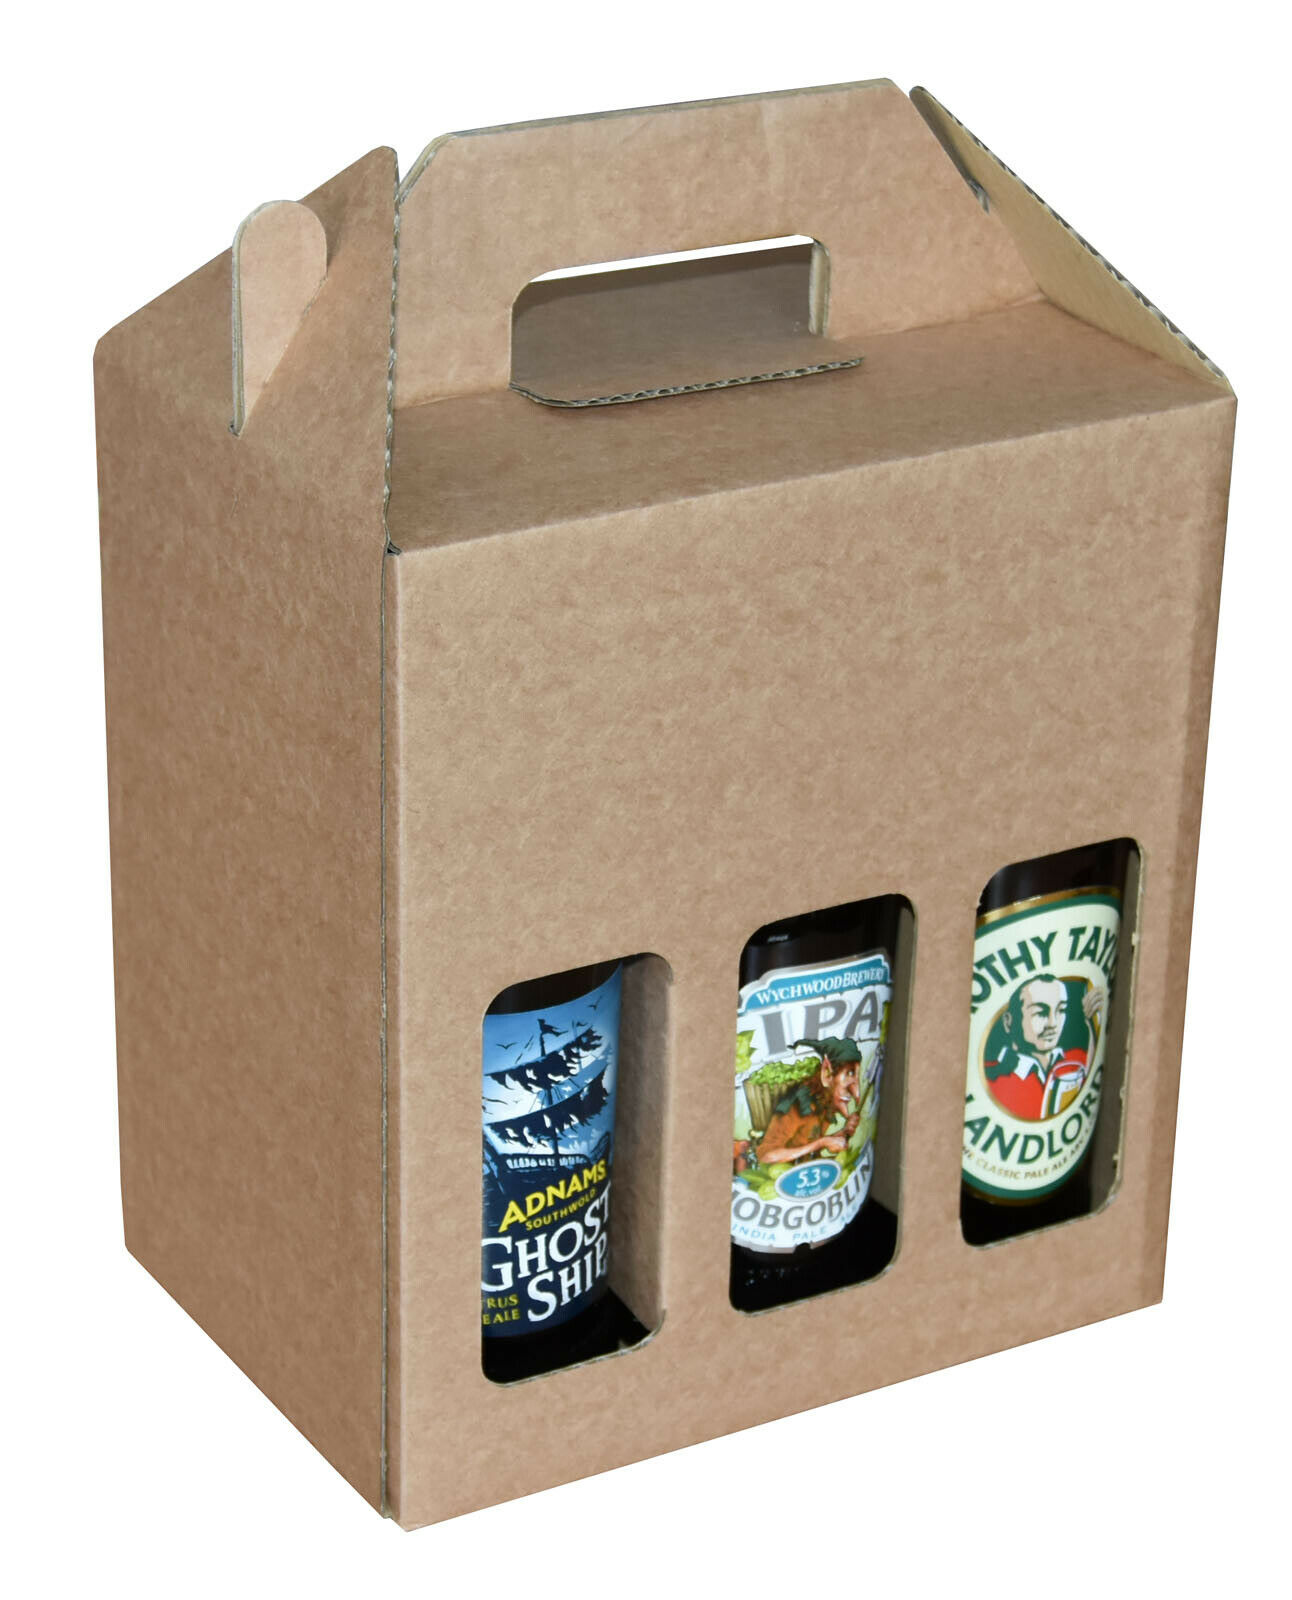 Beer Bottle Carrier Box Christmas Gifts Holds 6 Bottles up to 245mm x 70mm